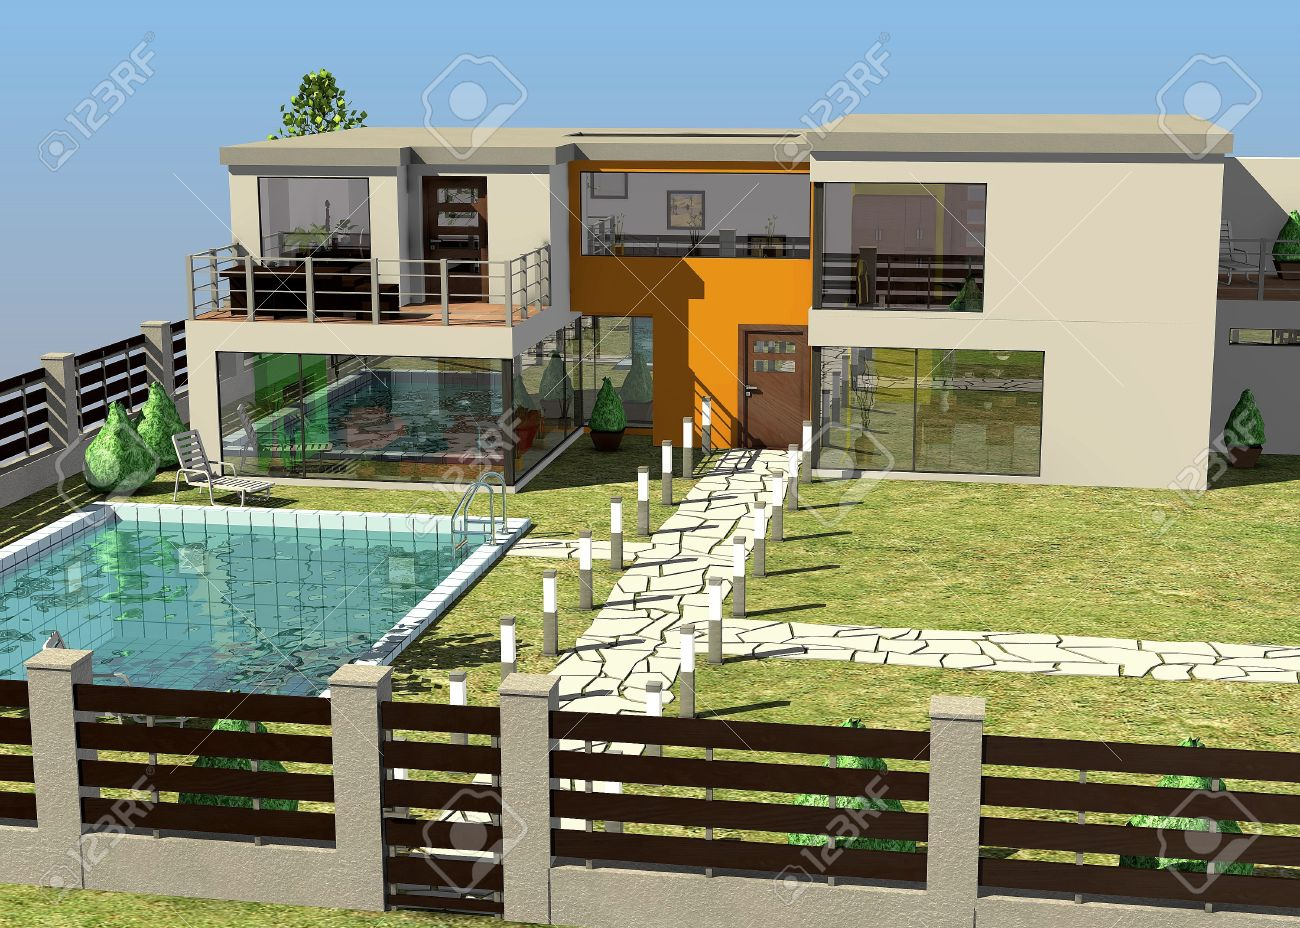 Architecture maison l 39 impression 3d for Architecture de maison moderne